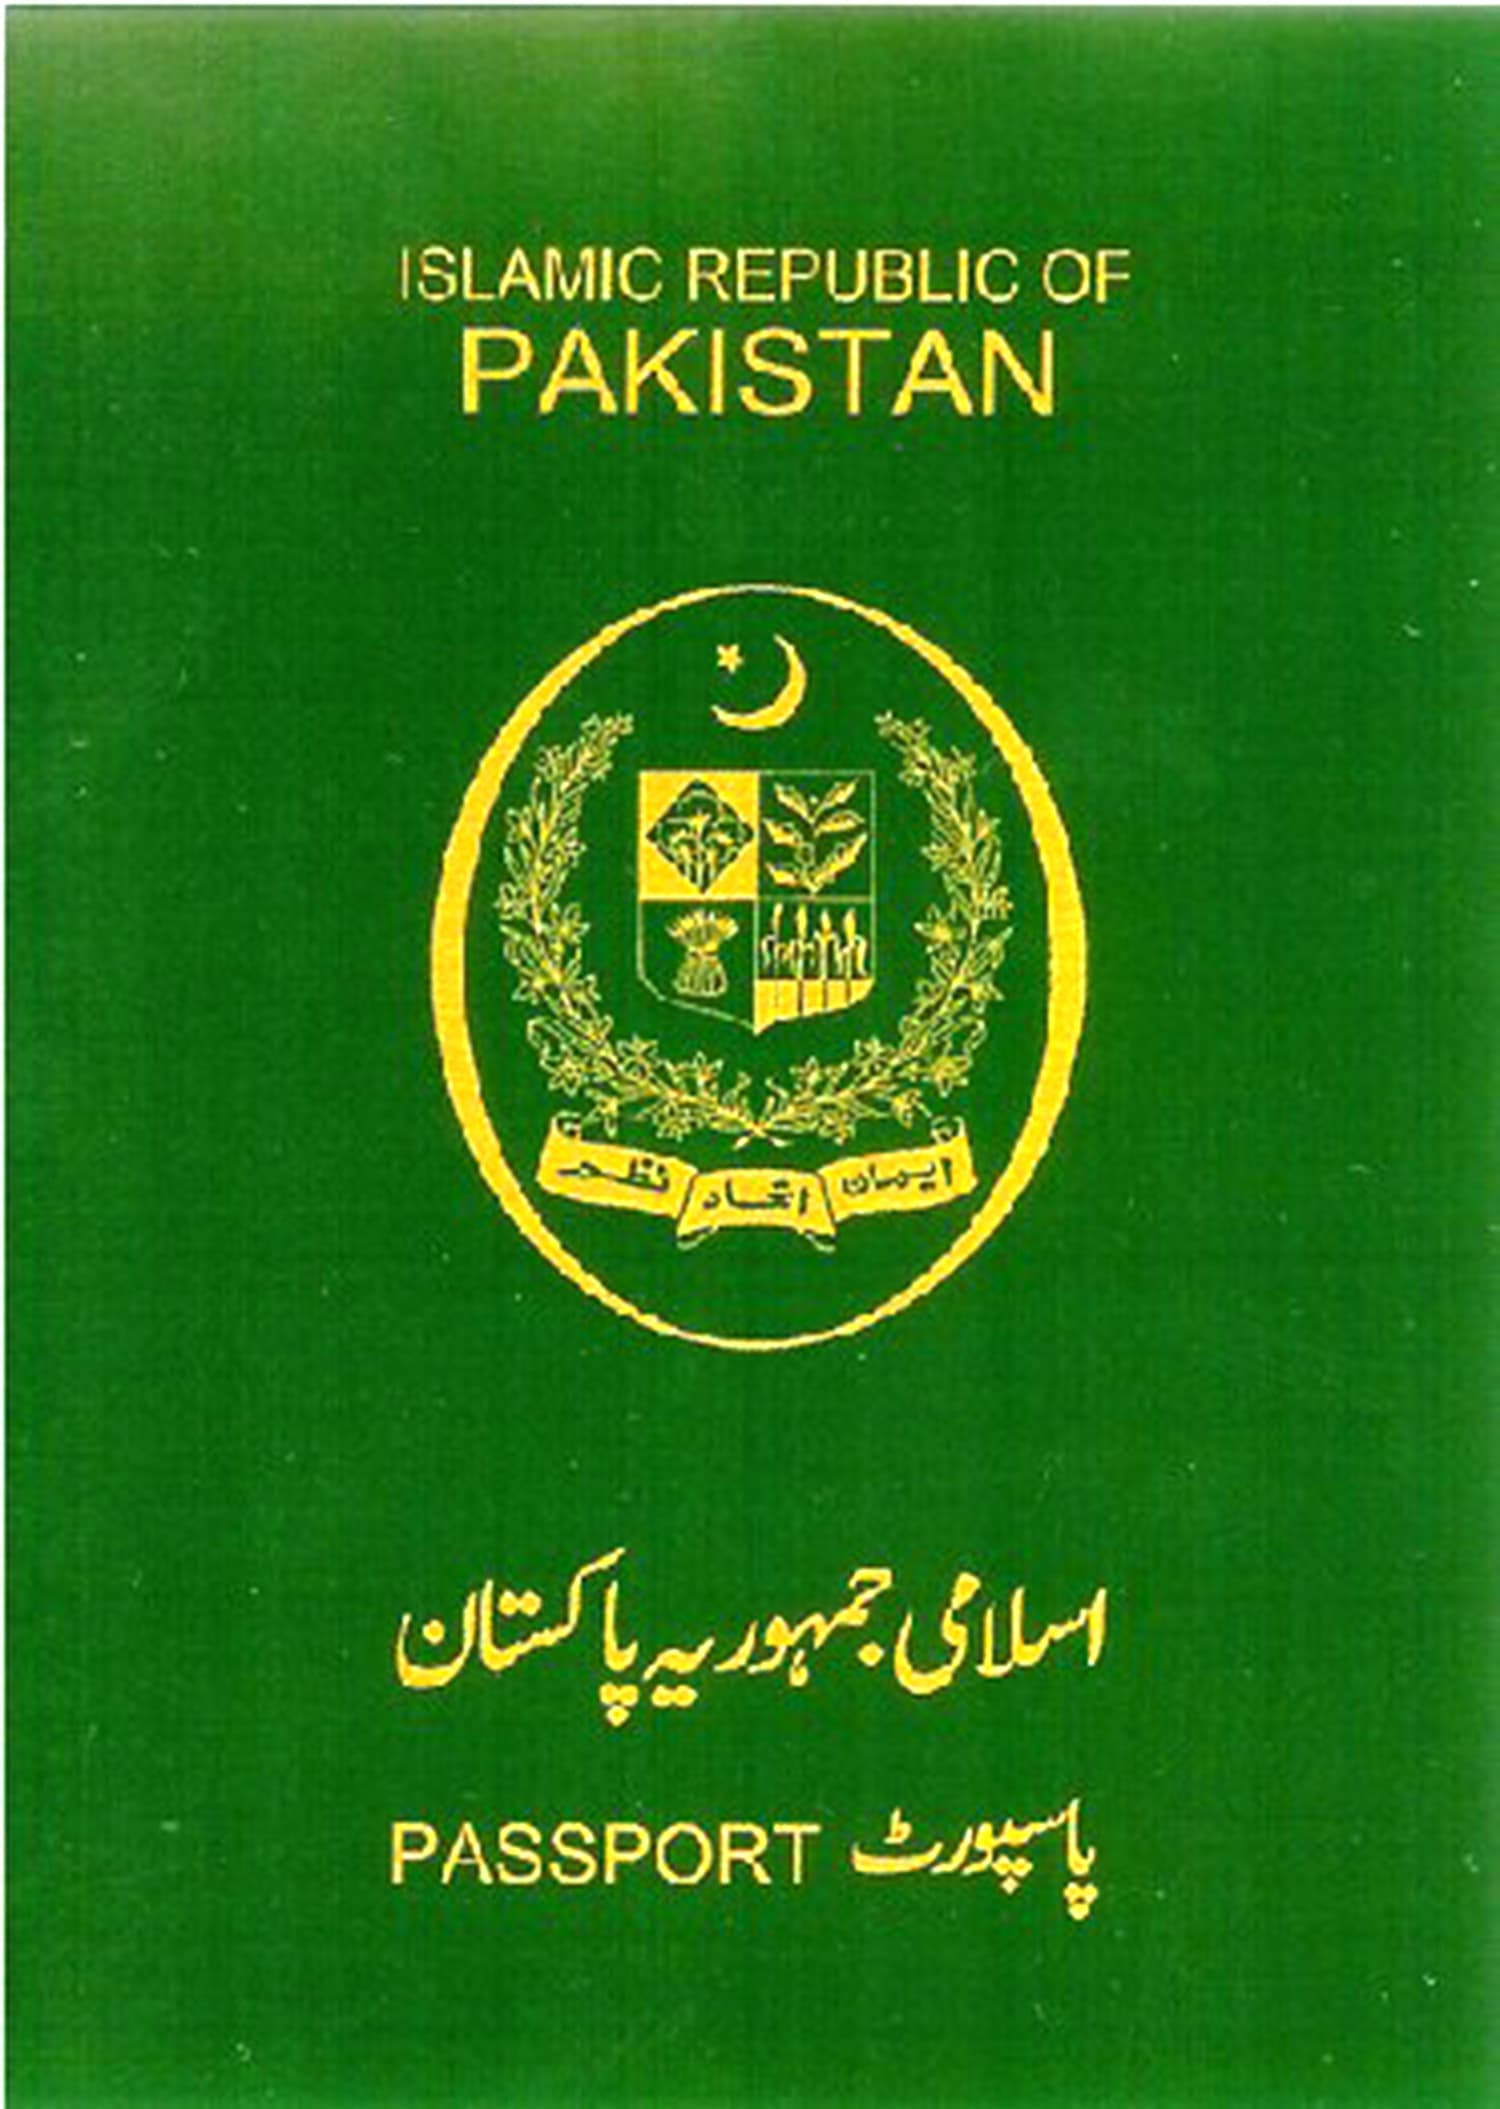 The Pakistani passport today